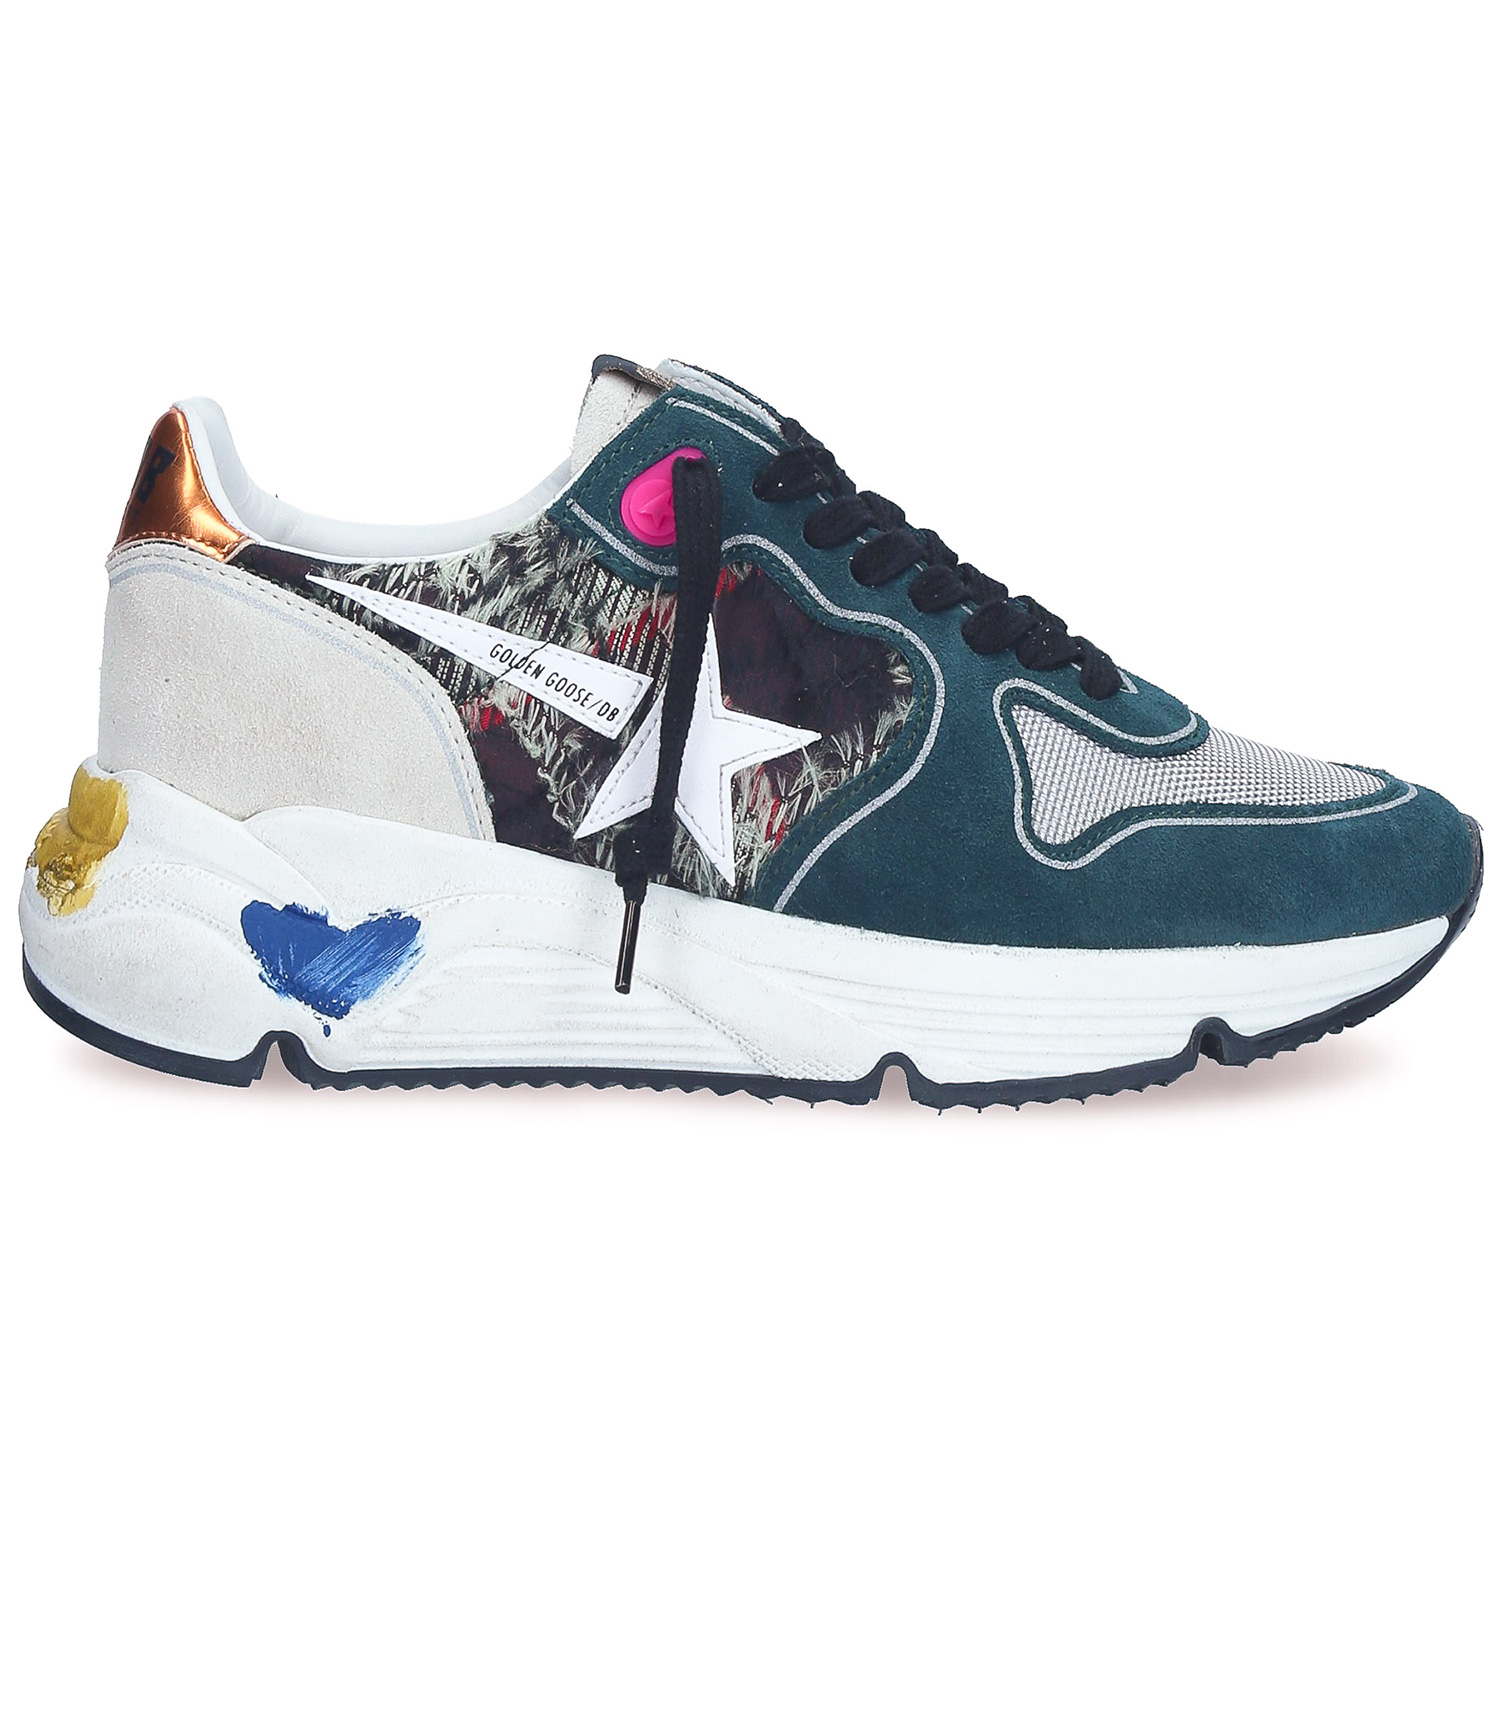 Sneakers Running Sole Green Check White Star